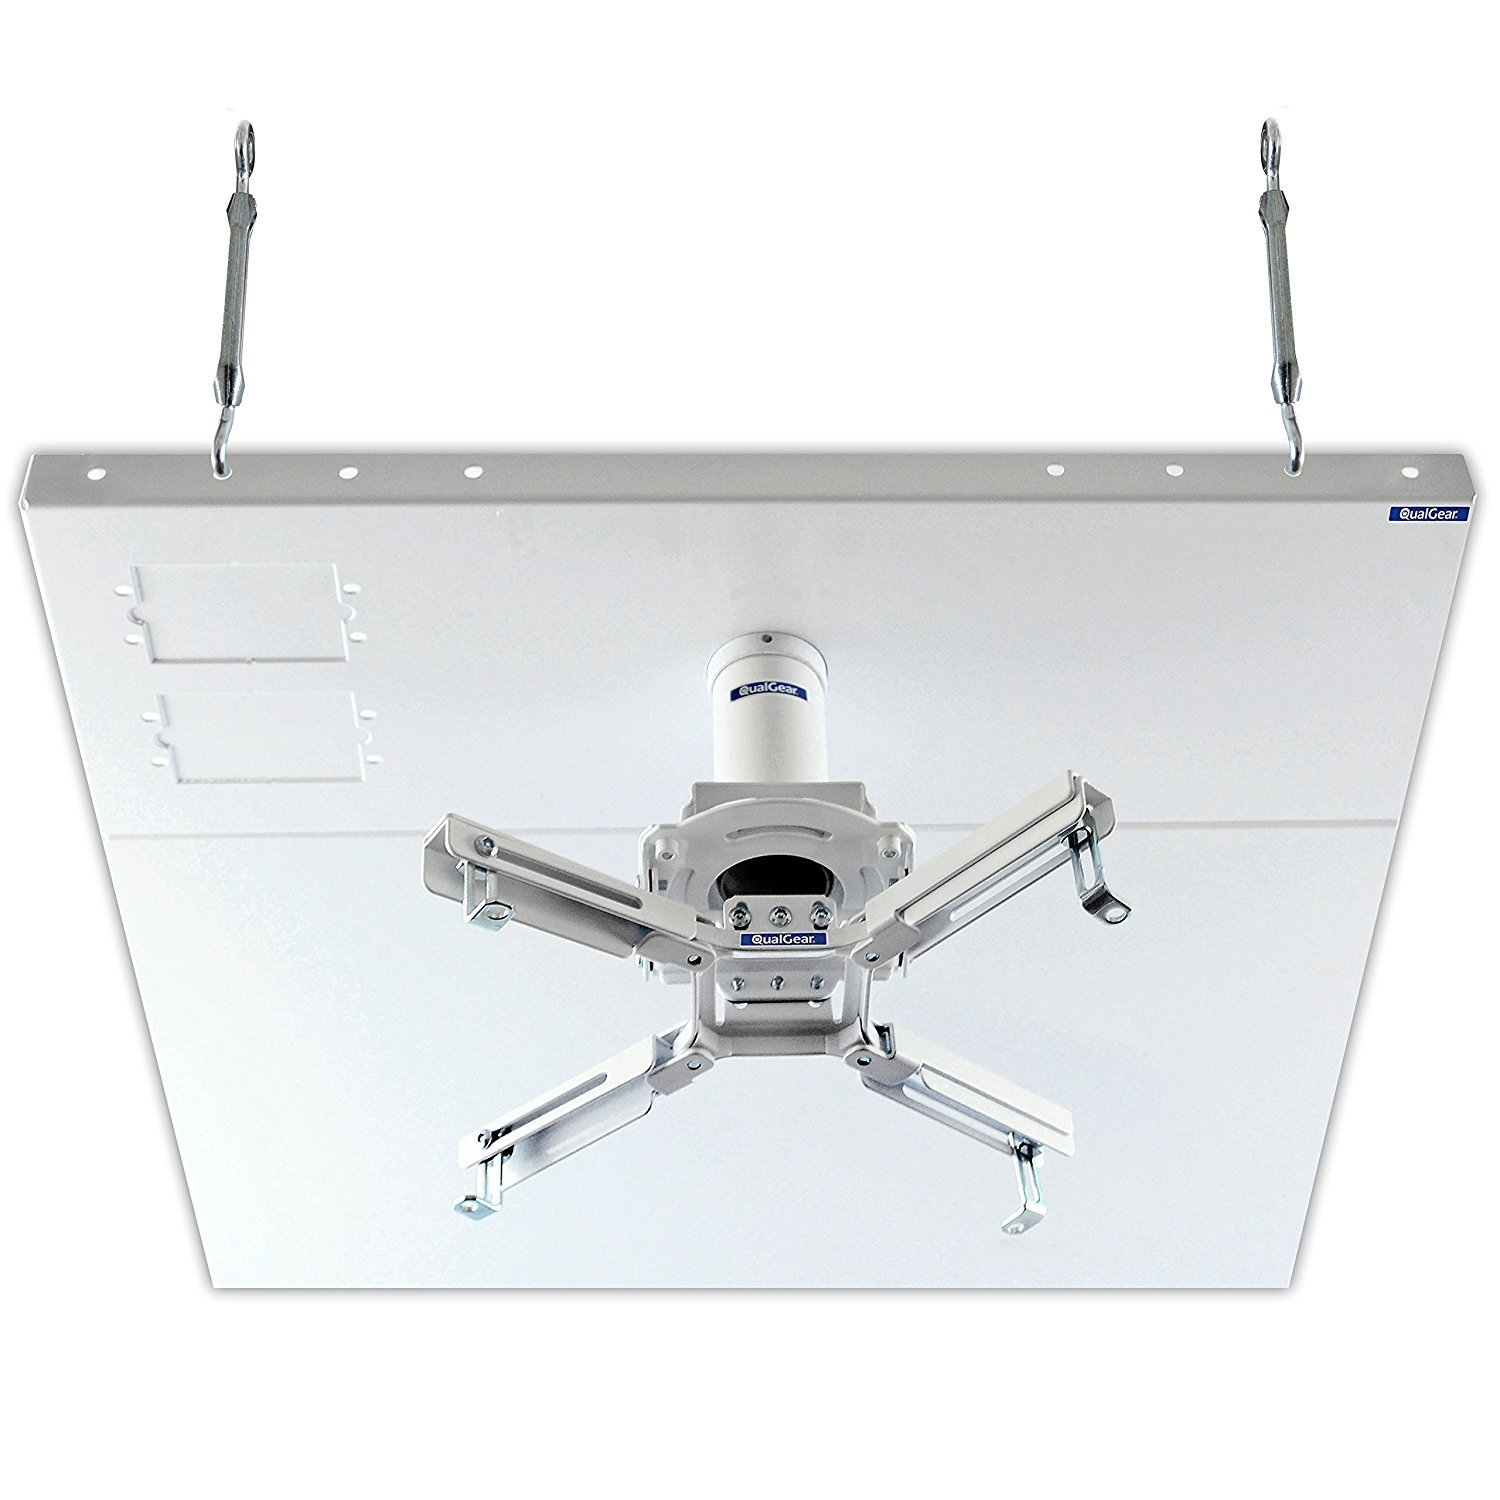 QualGear Pro-AV QG-KIT-S2-3IN-W Projector Mount Kit Accessory Suspended Ceiling 2'x2' Adapter, White